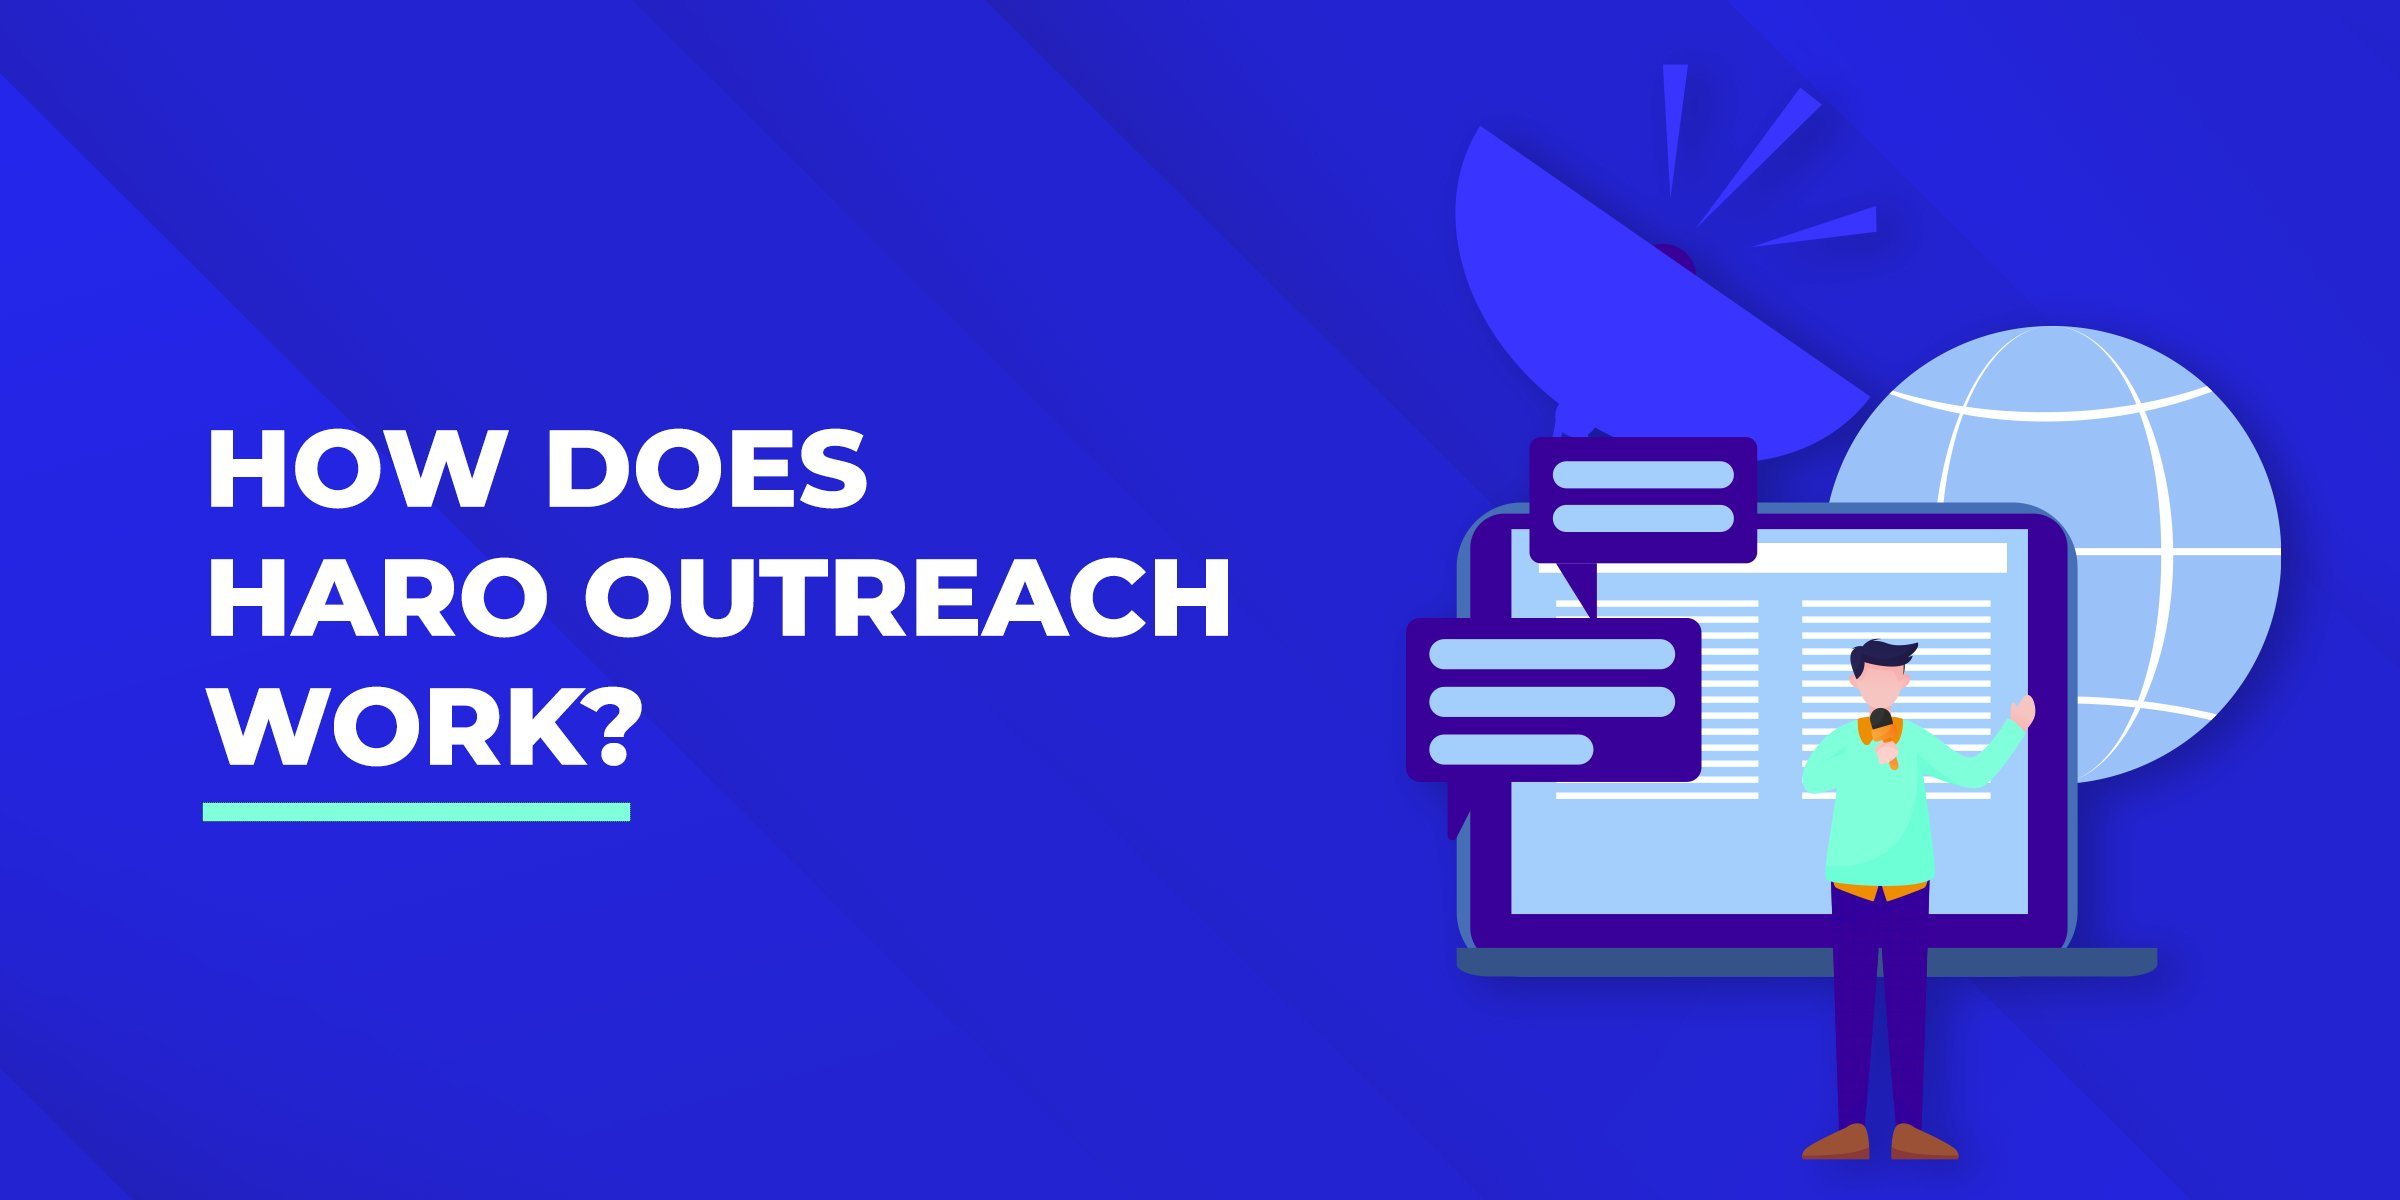 How Does HARO Outreach Work?